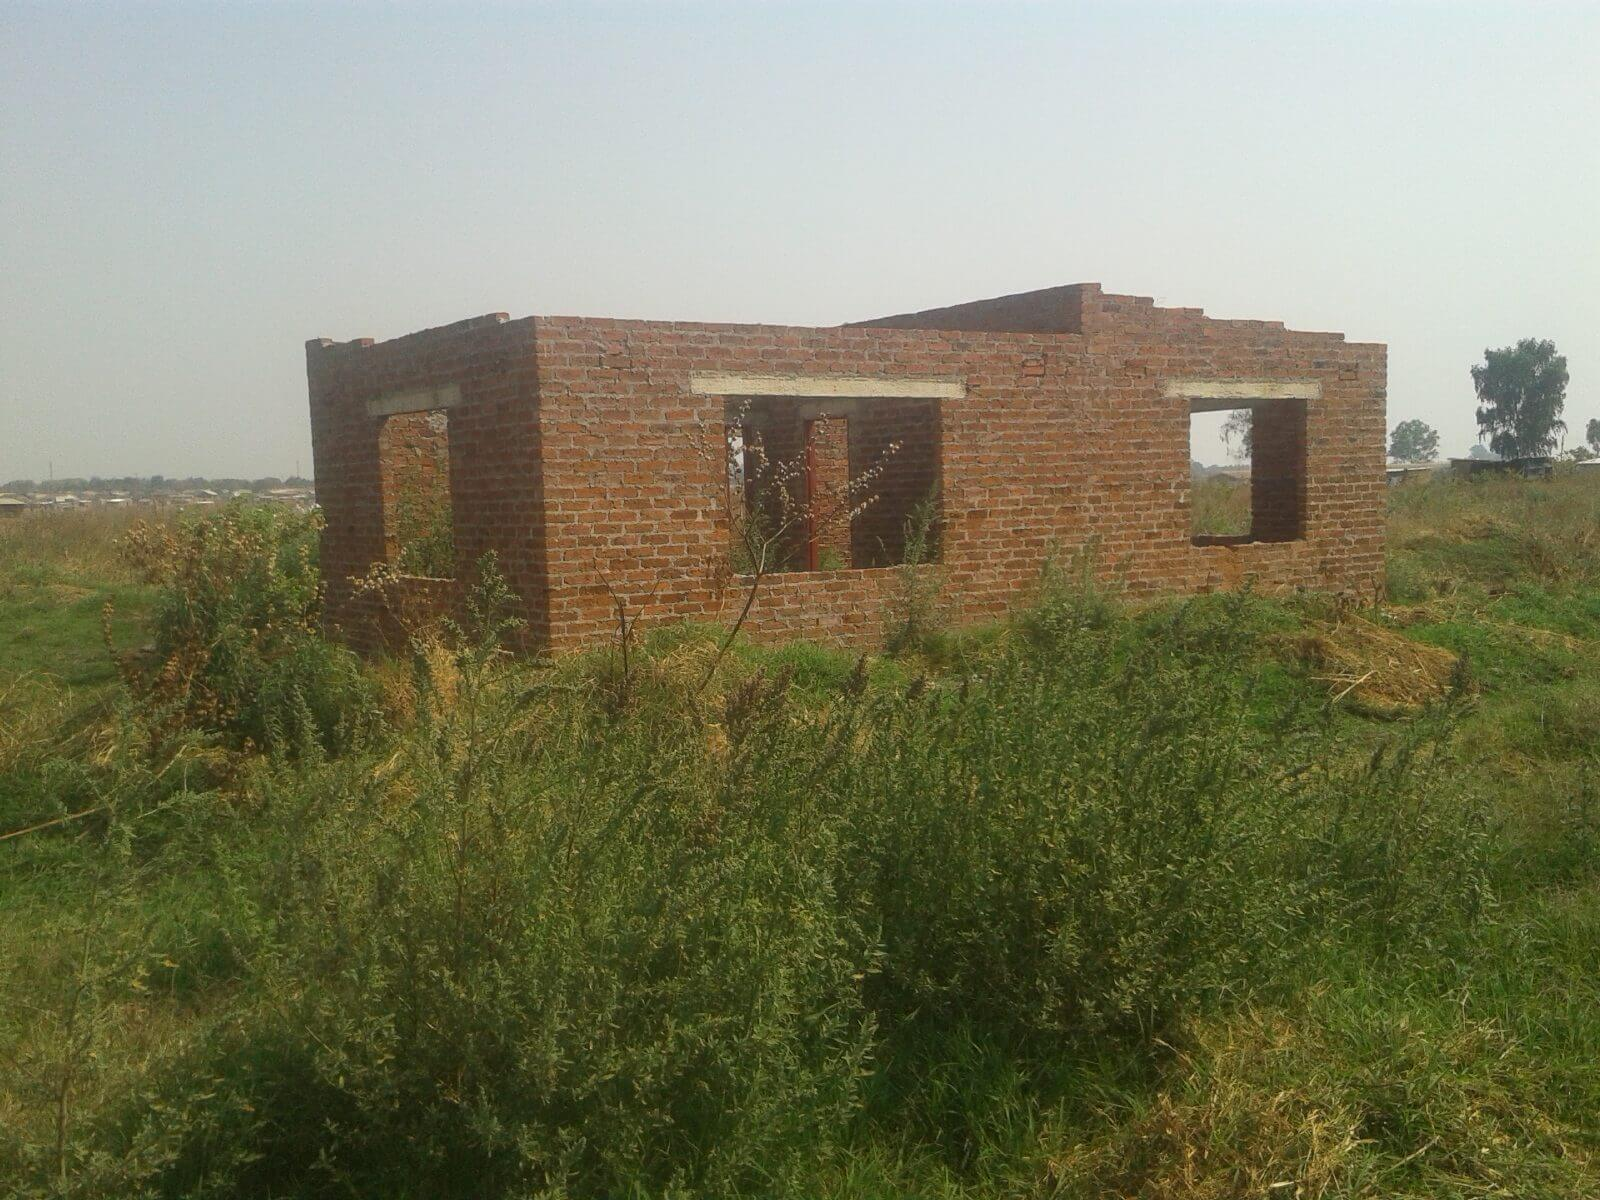 The Importance Of House Or Stand Price, Suburb Density And Other Factors In  Fulfilling Your Real Estate Dream In Zimbabwe